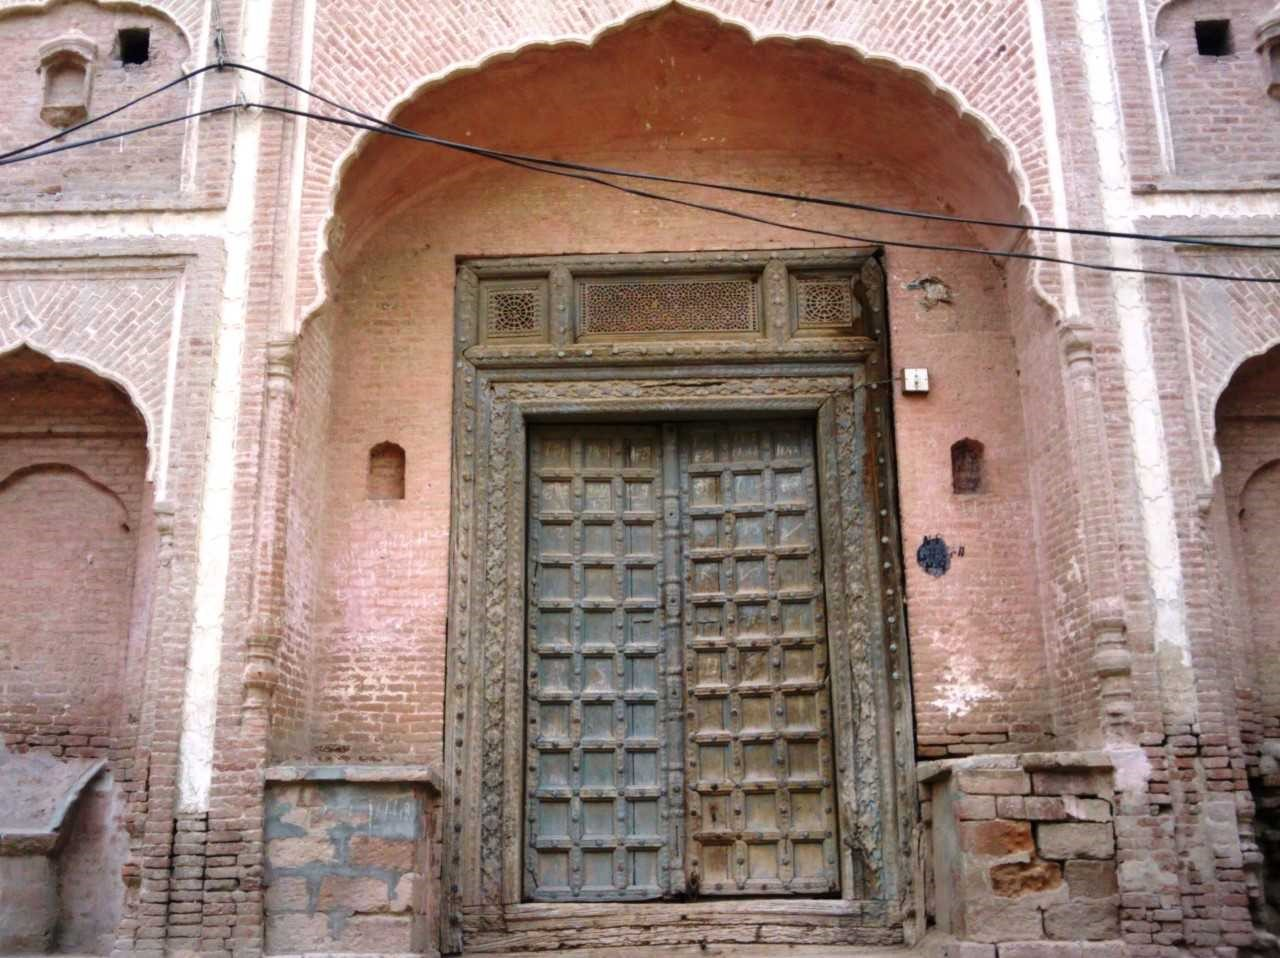 Butalia family ancestral home at village Butala near Gujranwala, Pakistan, built in the 1850s. – Photo: TSB